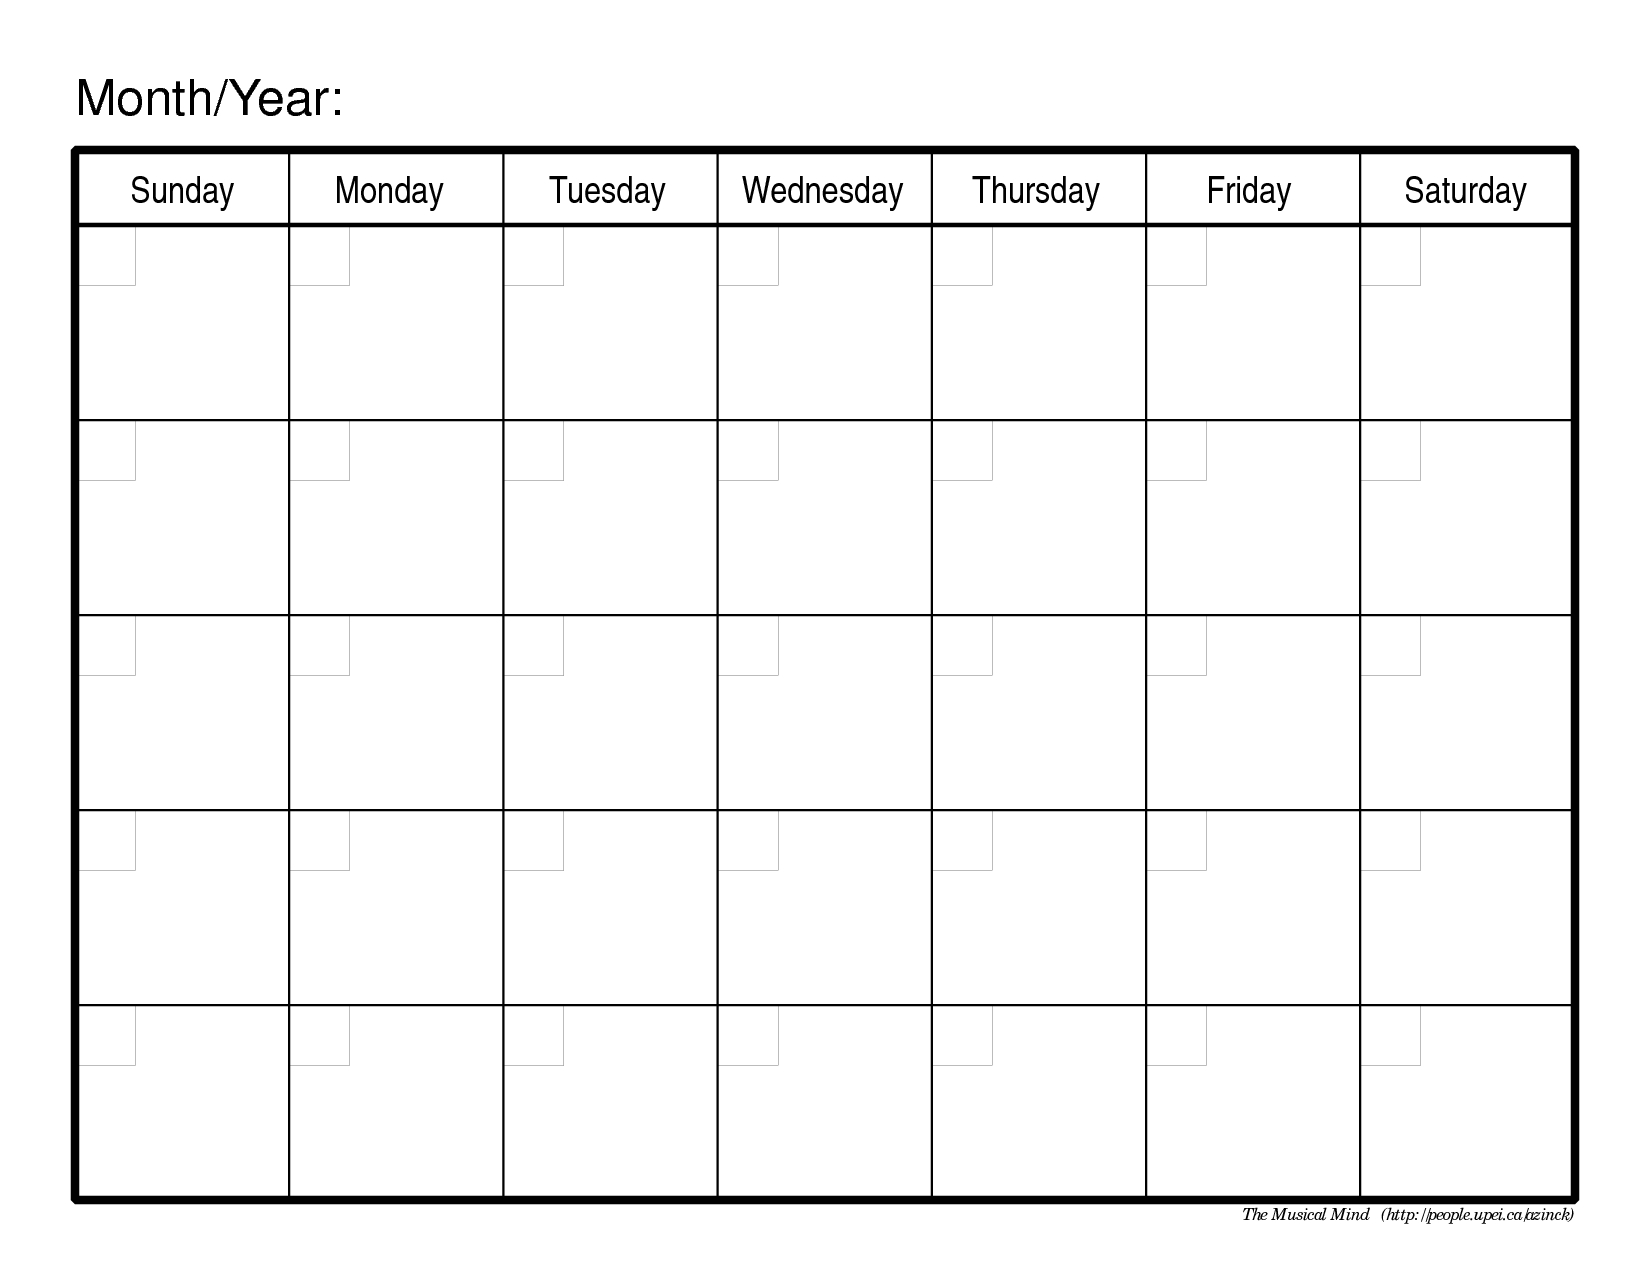 Calendar Templates Printable Free Fieldstation Co Self Discovery throughout Free Editable Monthly Calendar Printable